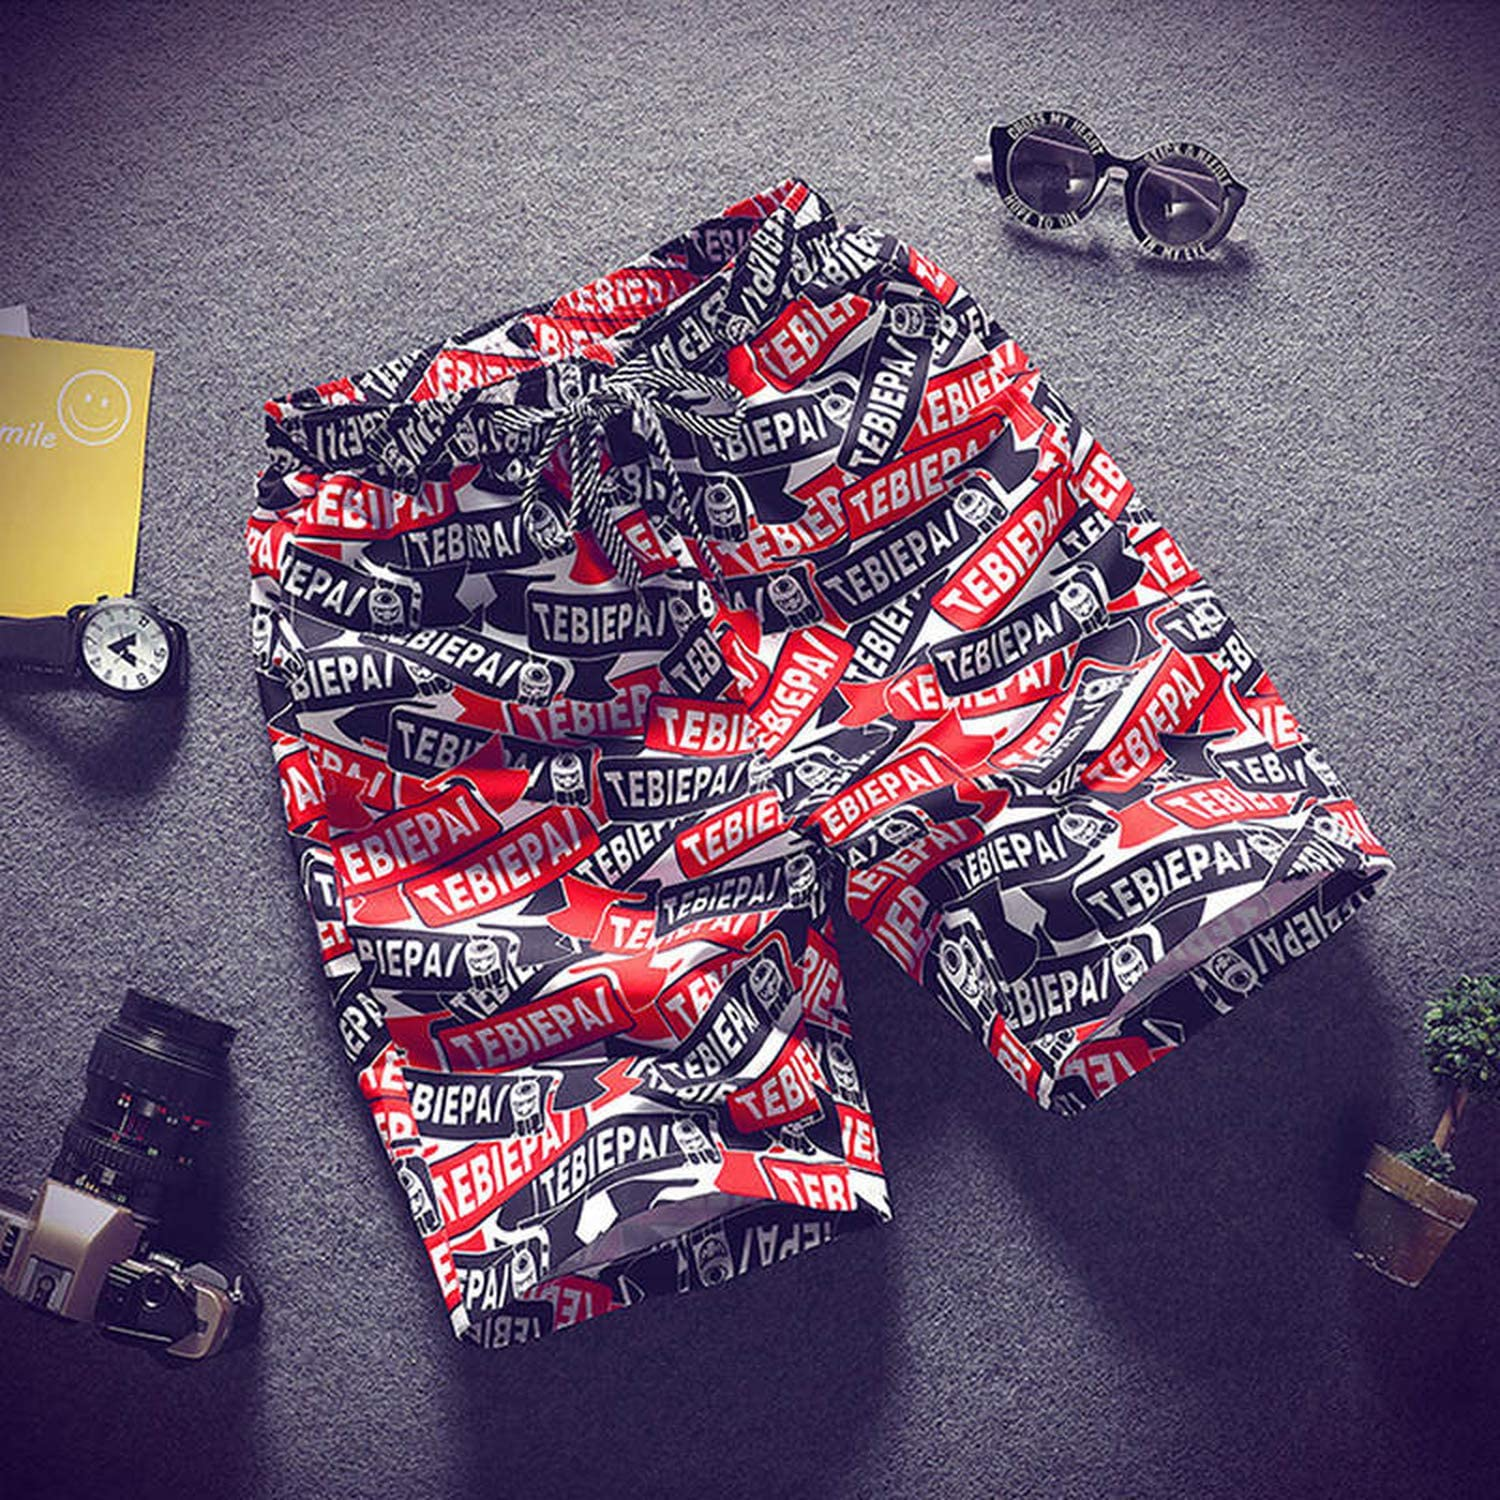 CuriousLady 2019 Mens Beach Shorts Personality Printing Summer Thin Section Breathable Comfort M-4XL,16,XL